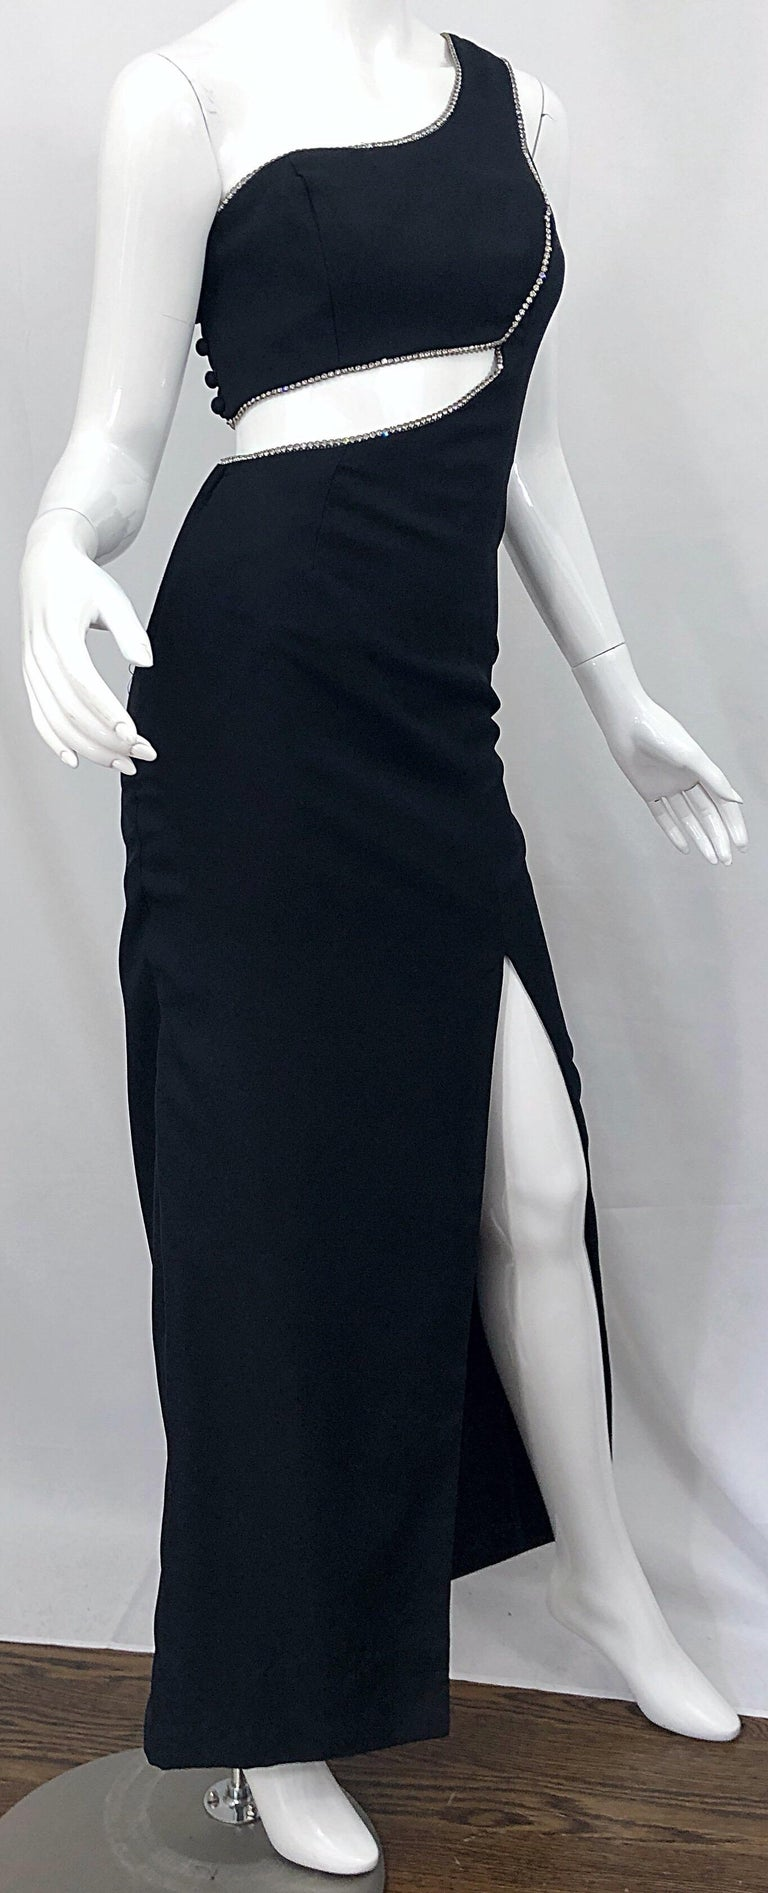 Sexy 1990s Size 6 / 8 Black Crepe Rayon + Rhinestones One Shoulder Cut Out Gown For Sale 5